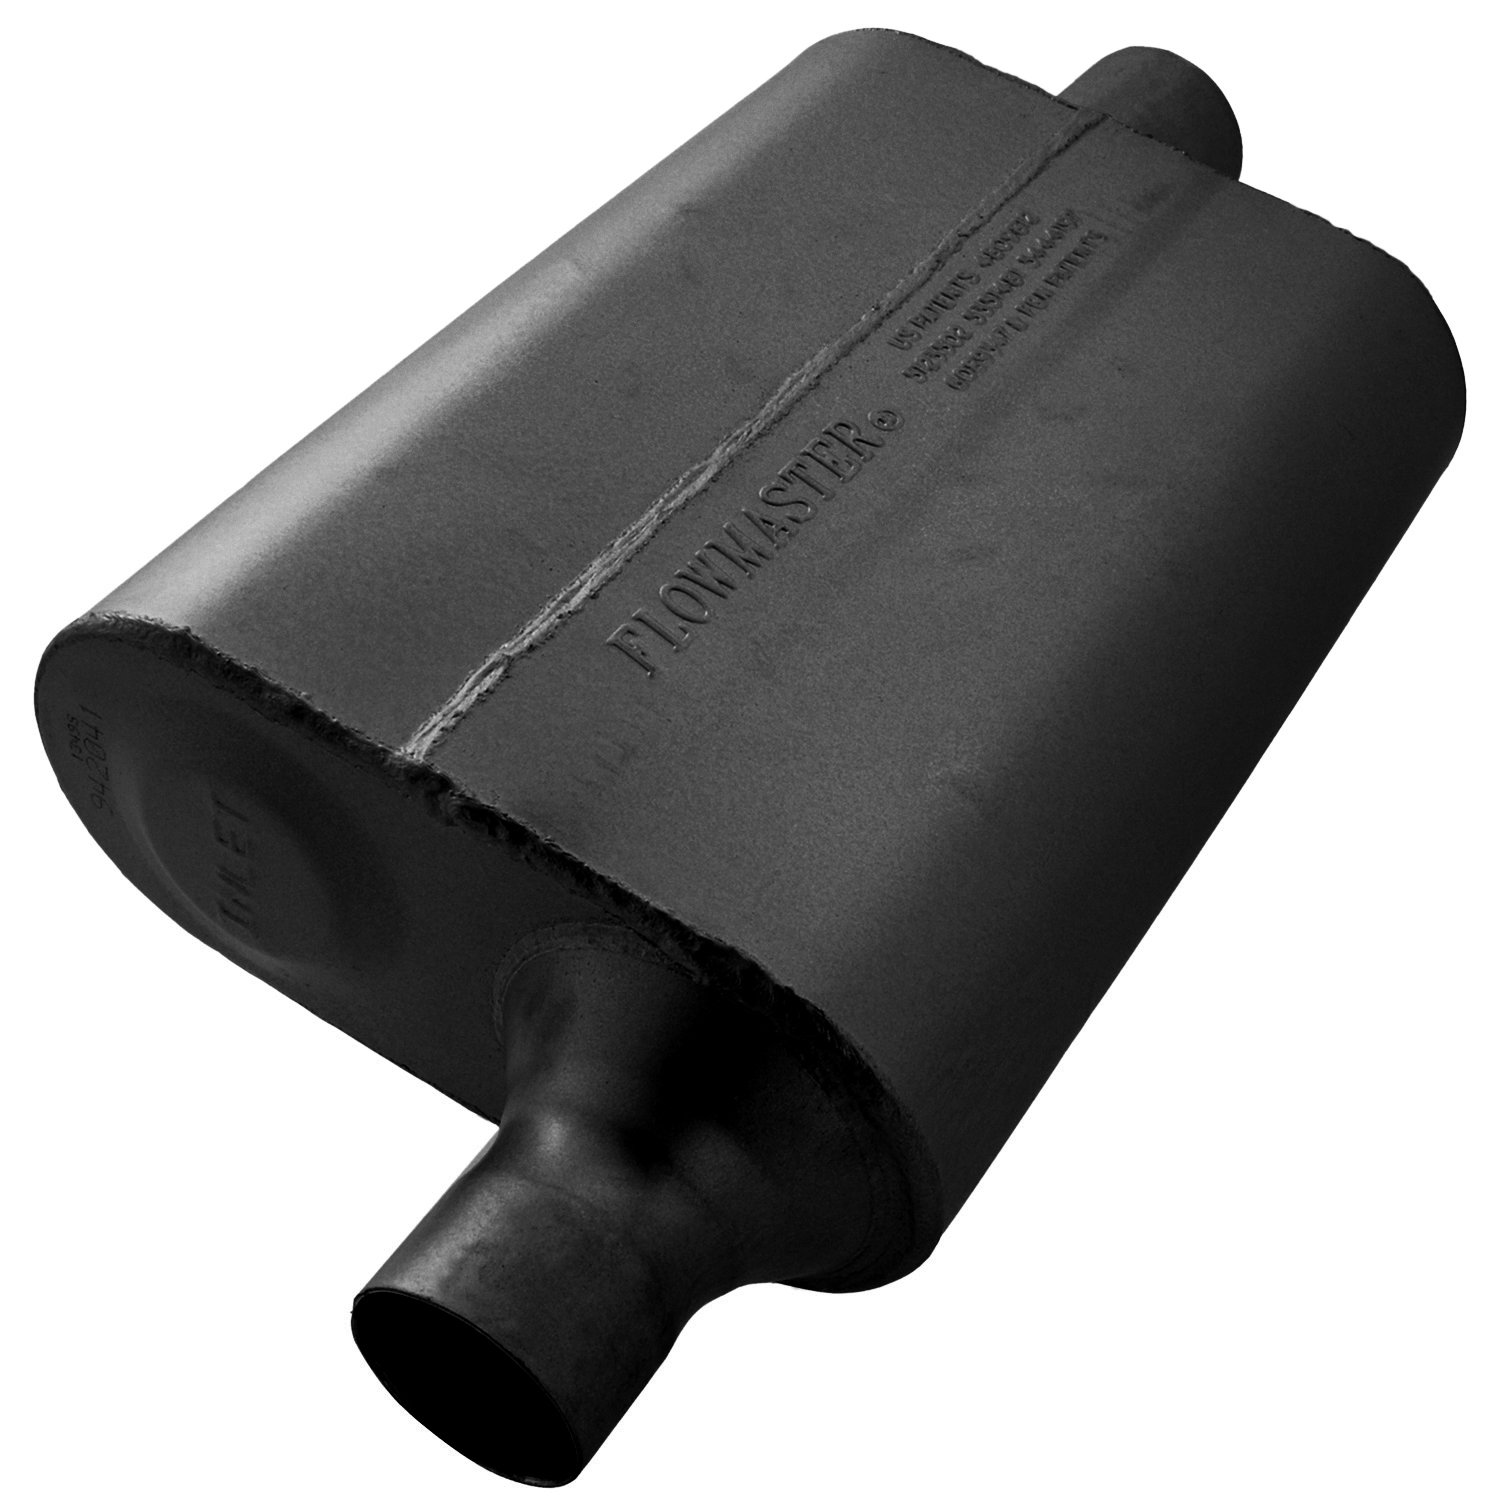 hight resolution of 942041 flowmaster 40 series delta flow chambered muffler image